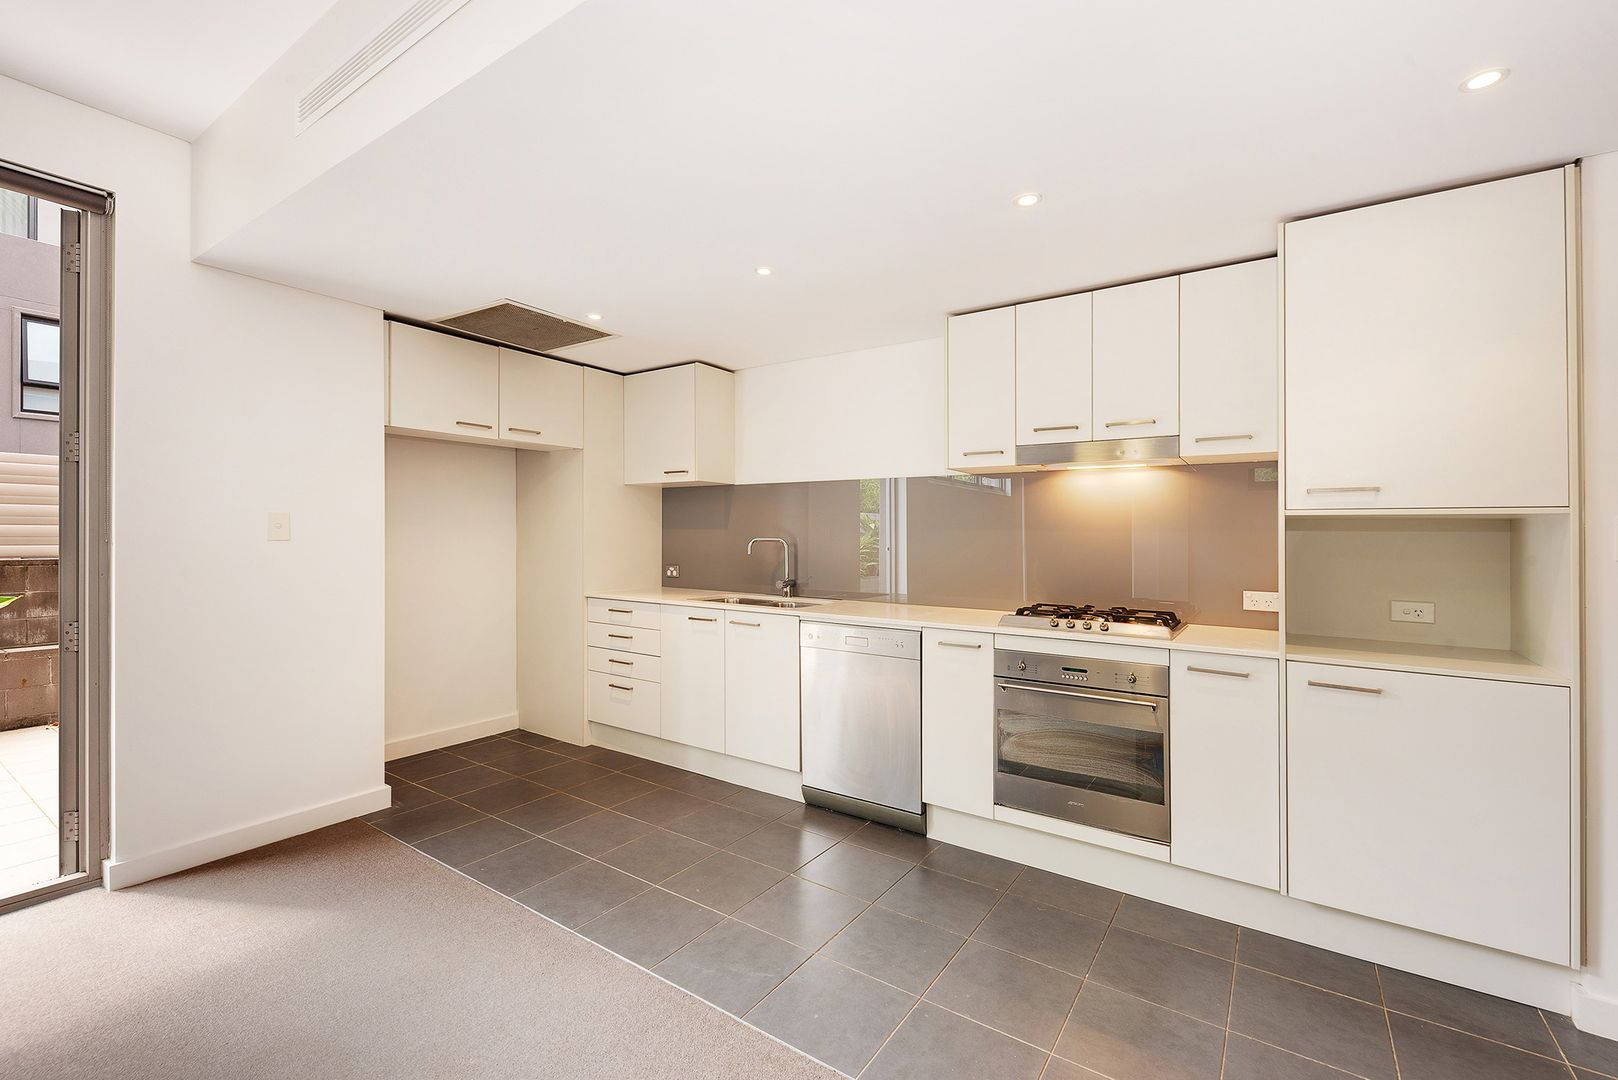 69/331 Miller Street, Cammeray NSW 2062, Image 2